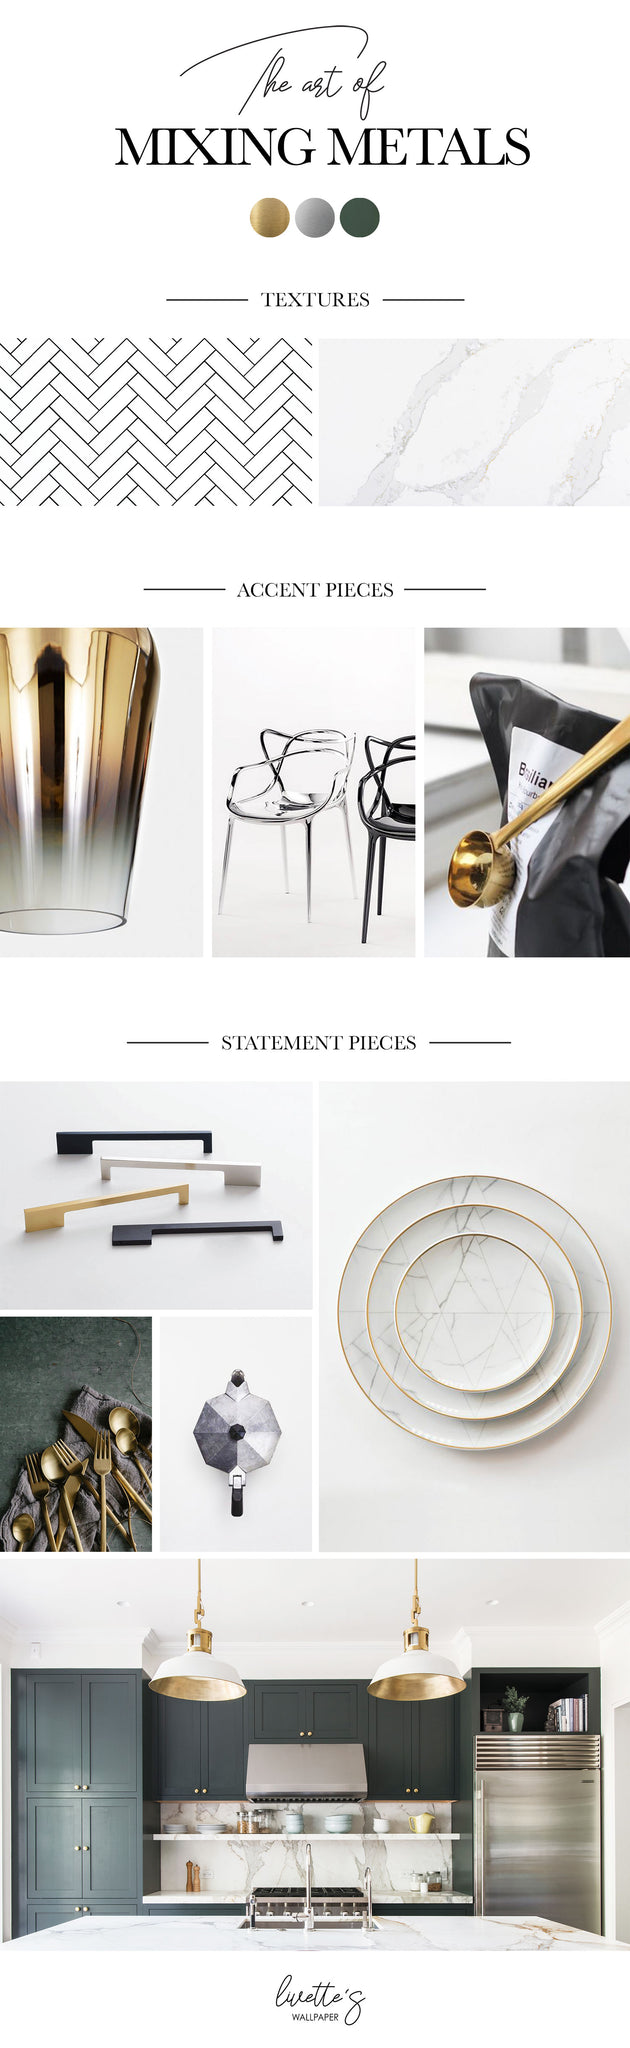 Mixed metals mood board for home interior